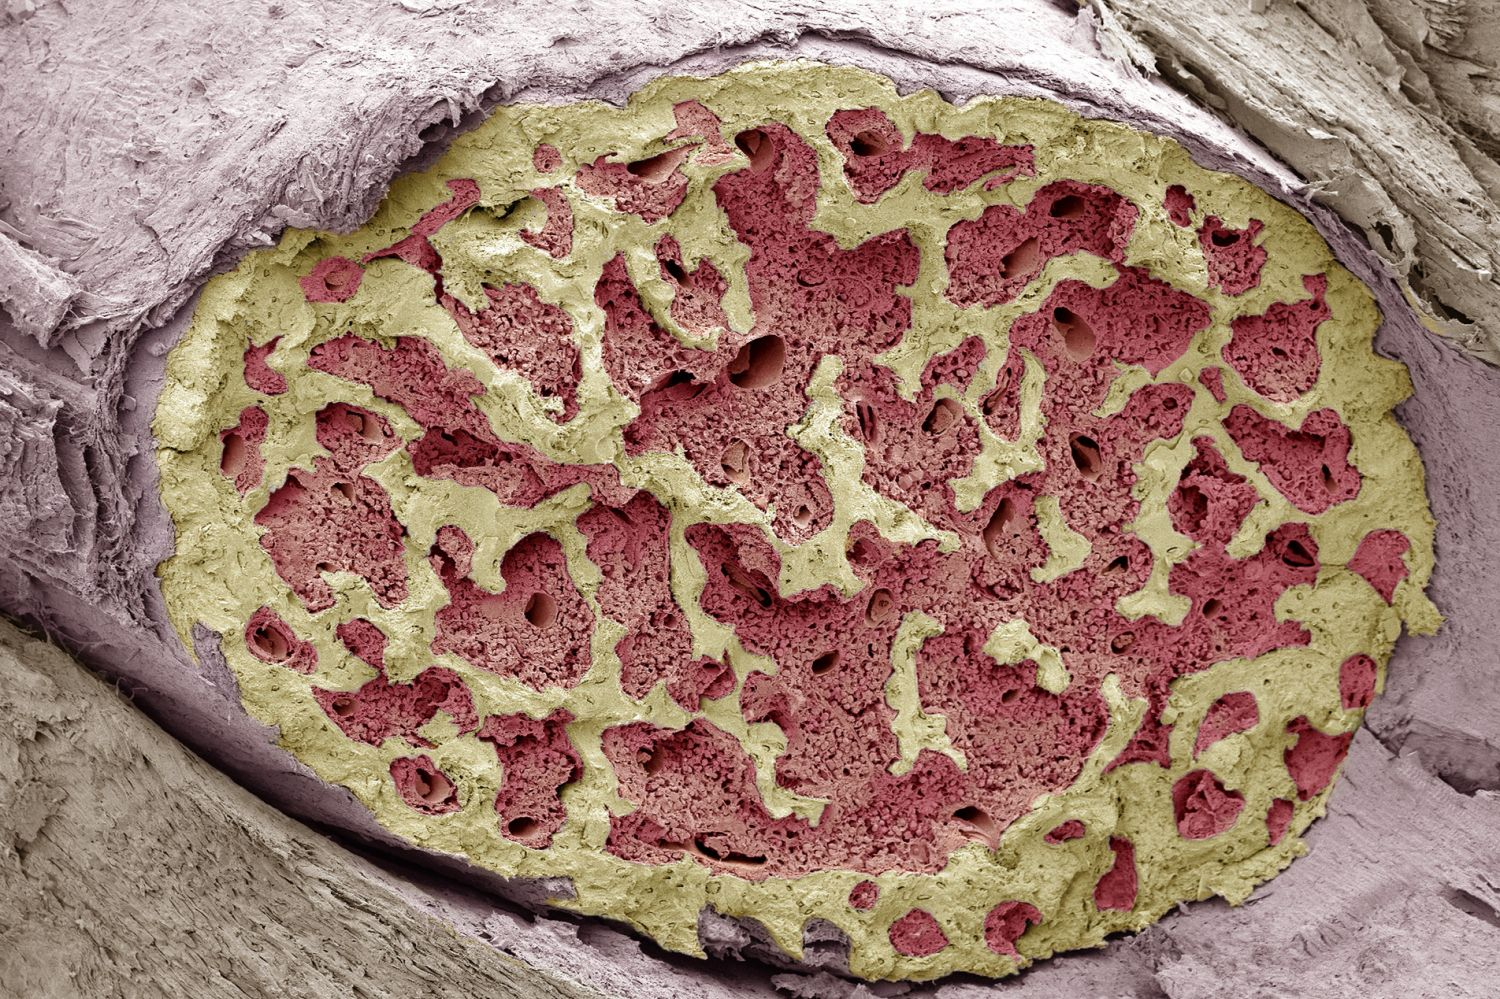 bone marrow cell diagram wiring ac split daikin structure function disease and more